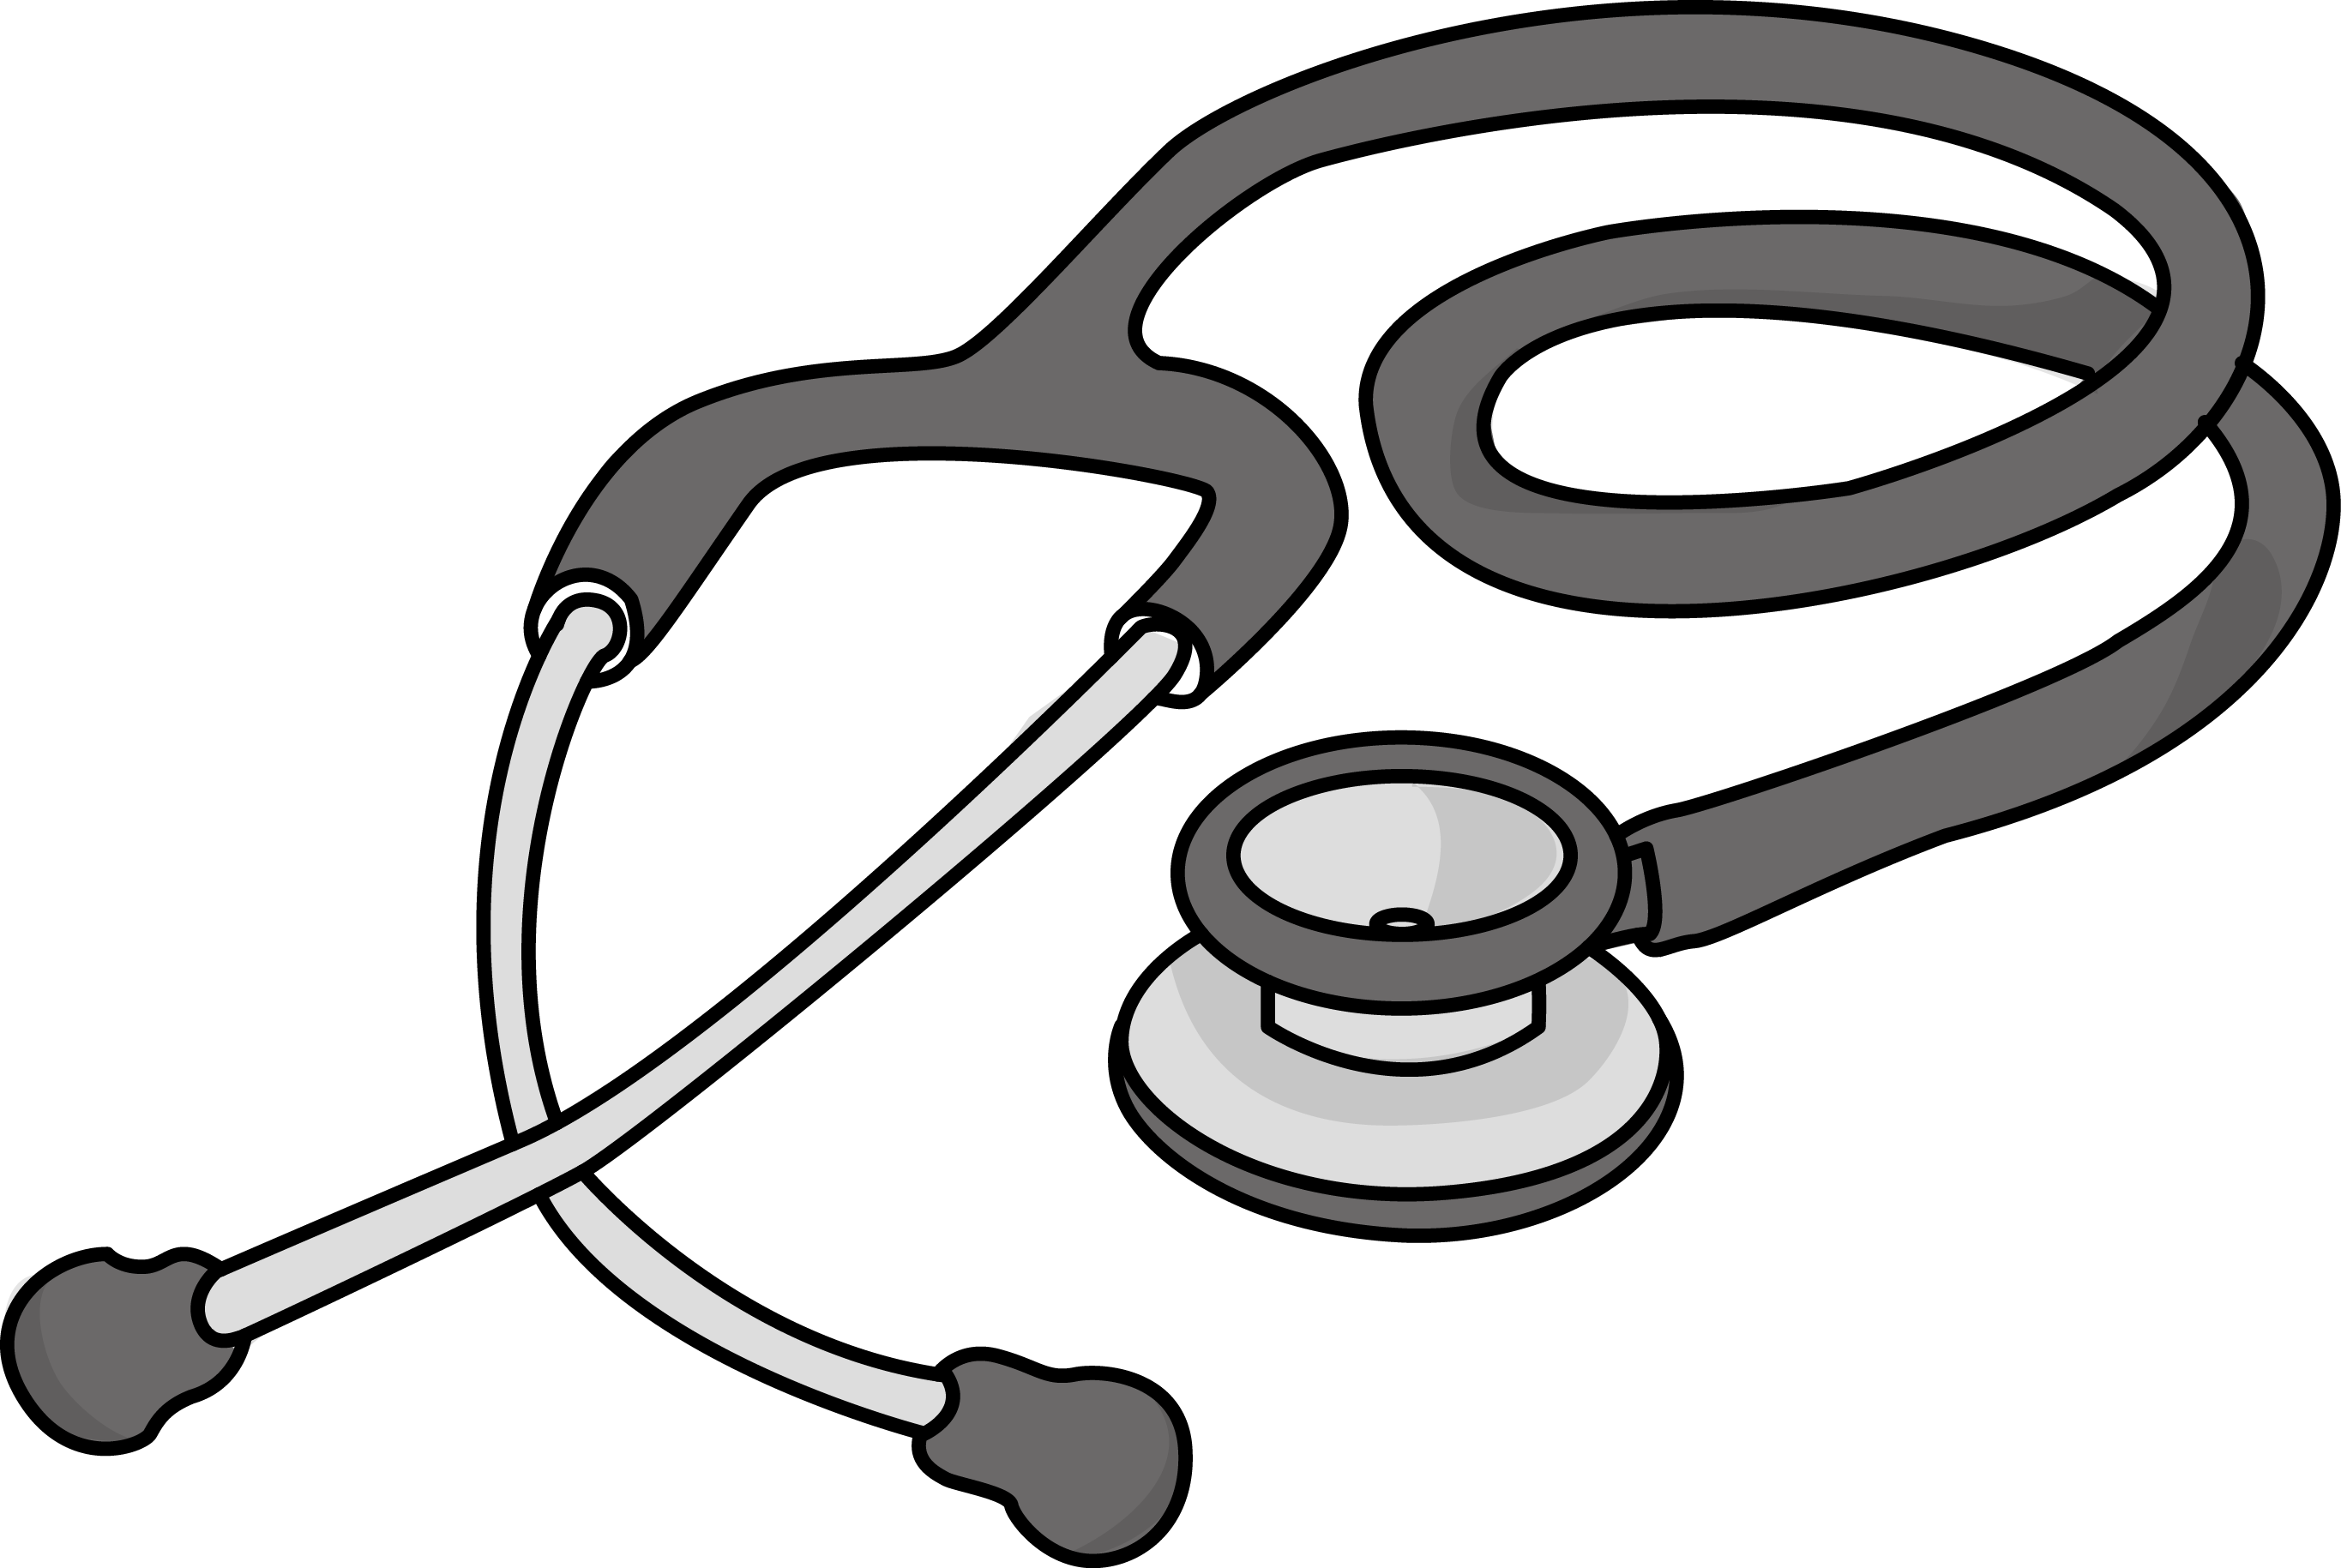 Transparent stethoscope medical. Image for free cardiology